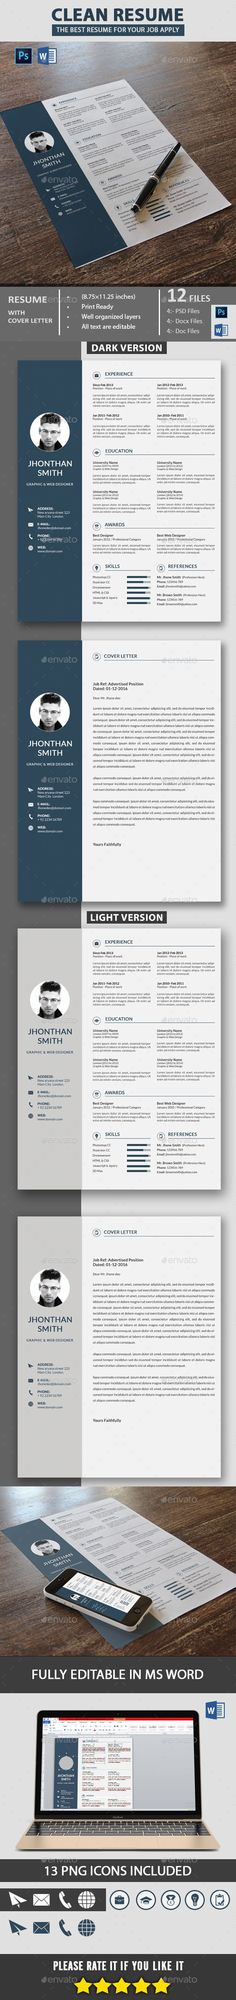 #Resume - Resumes #Stationery Download here: https://graphicriver.net/item/resume/18501811?ref=alena994